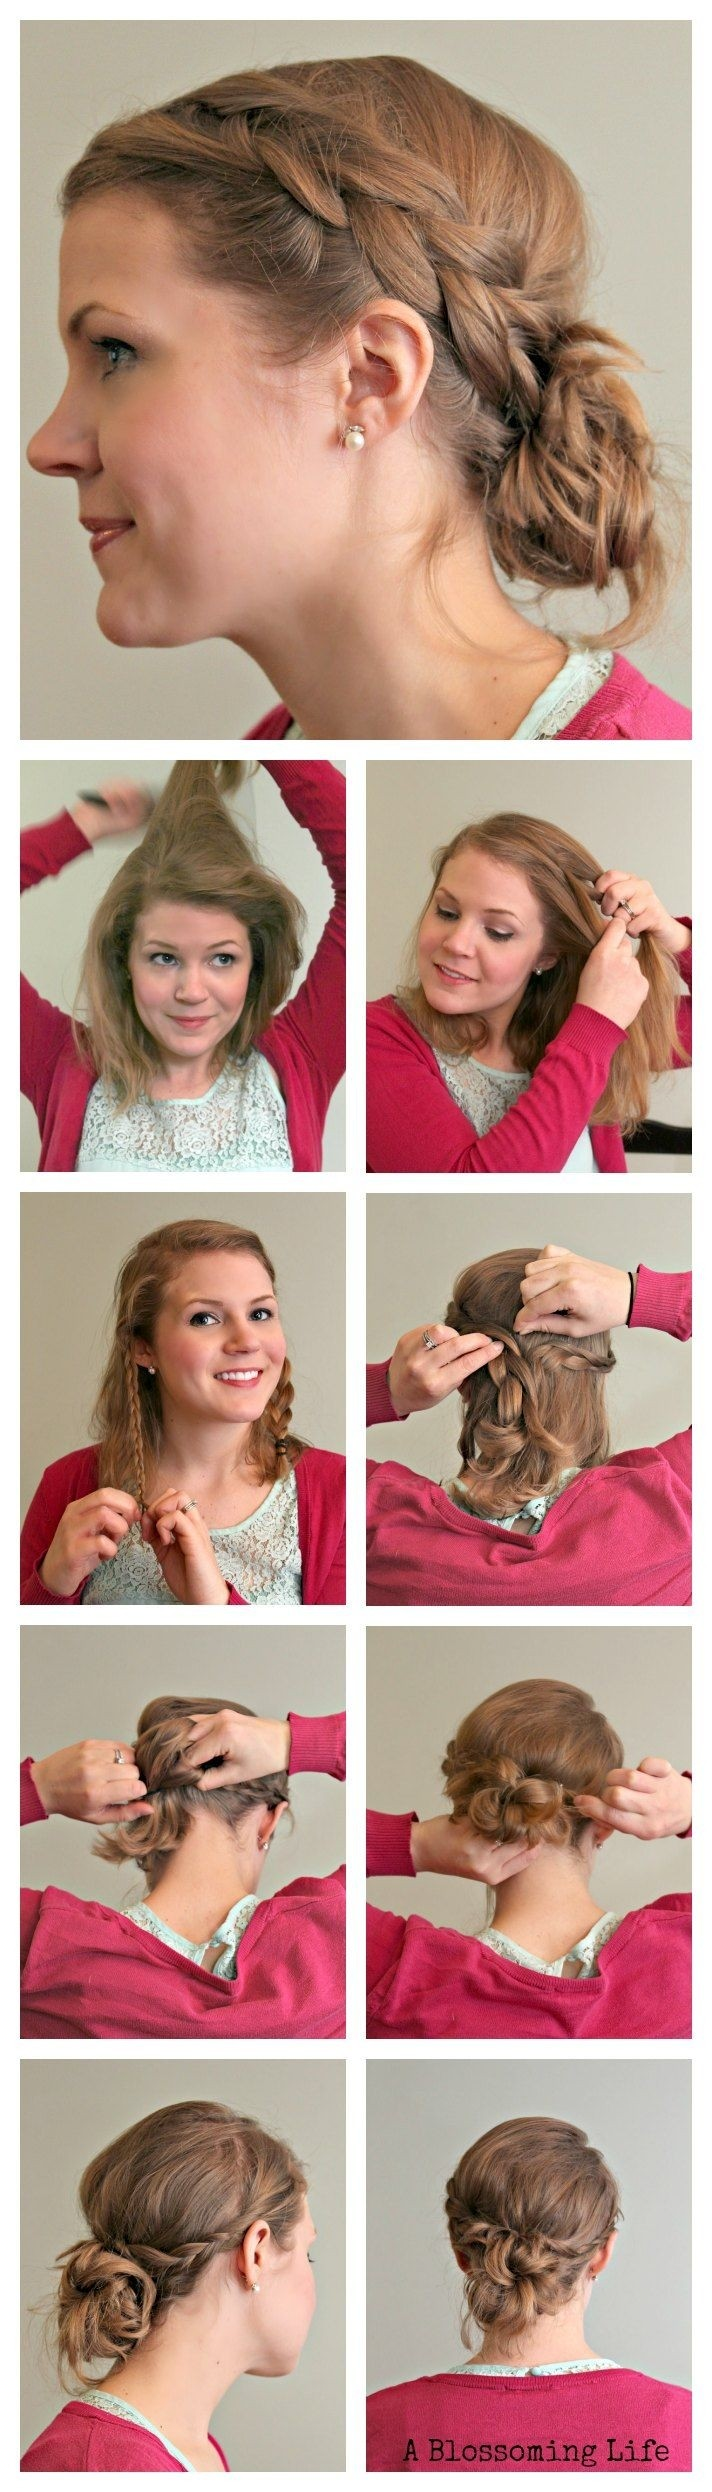 Magnificent 10 Simple Yet Stylish Updo Hairstyle Tutorials For All Occasions Short Hairstyles Gunalazisus